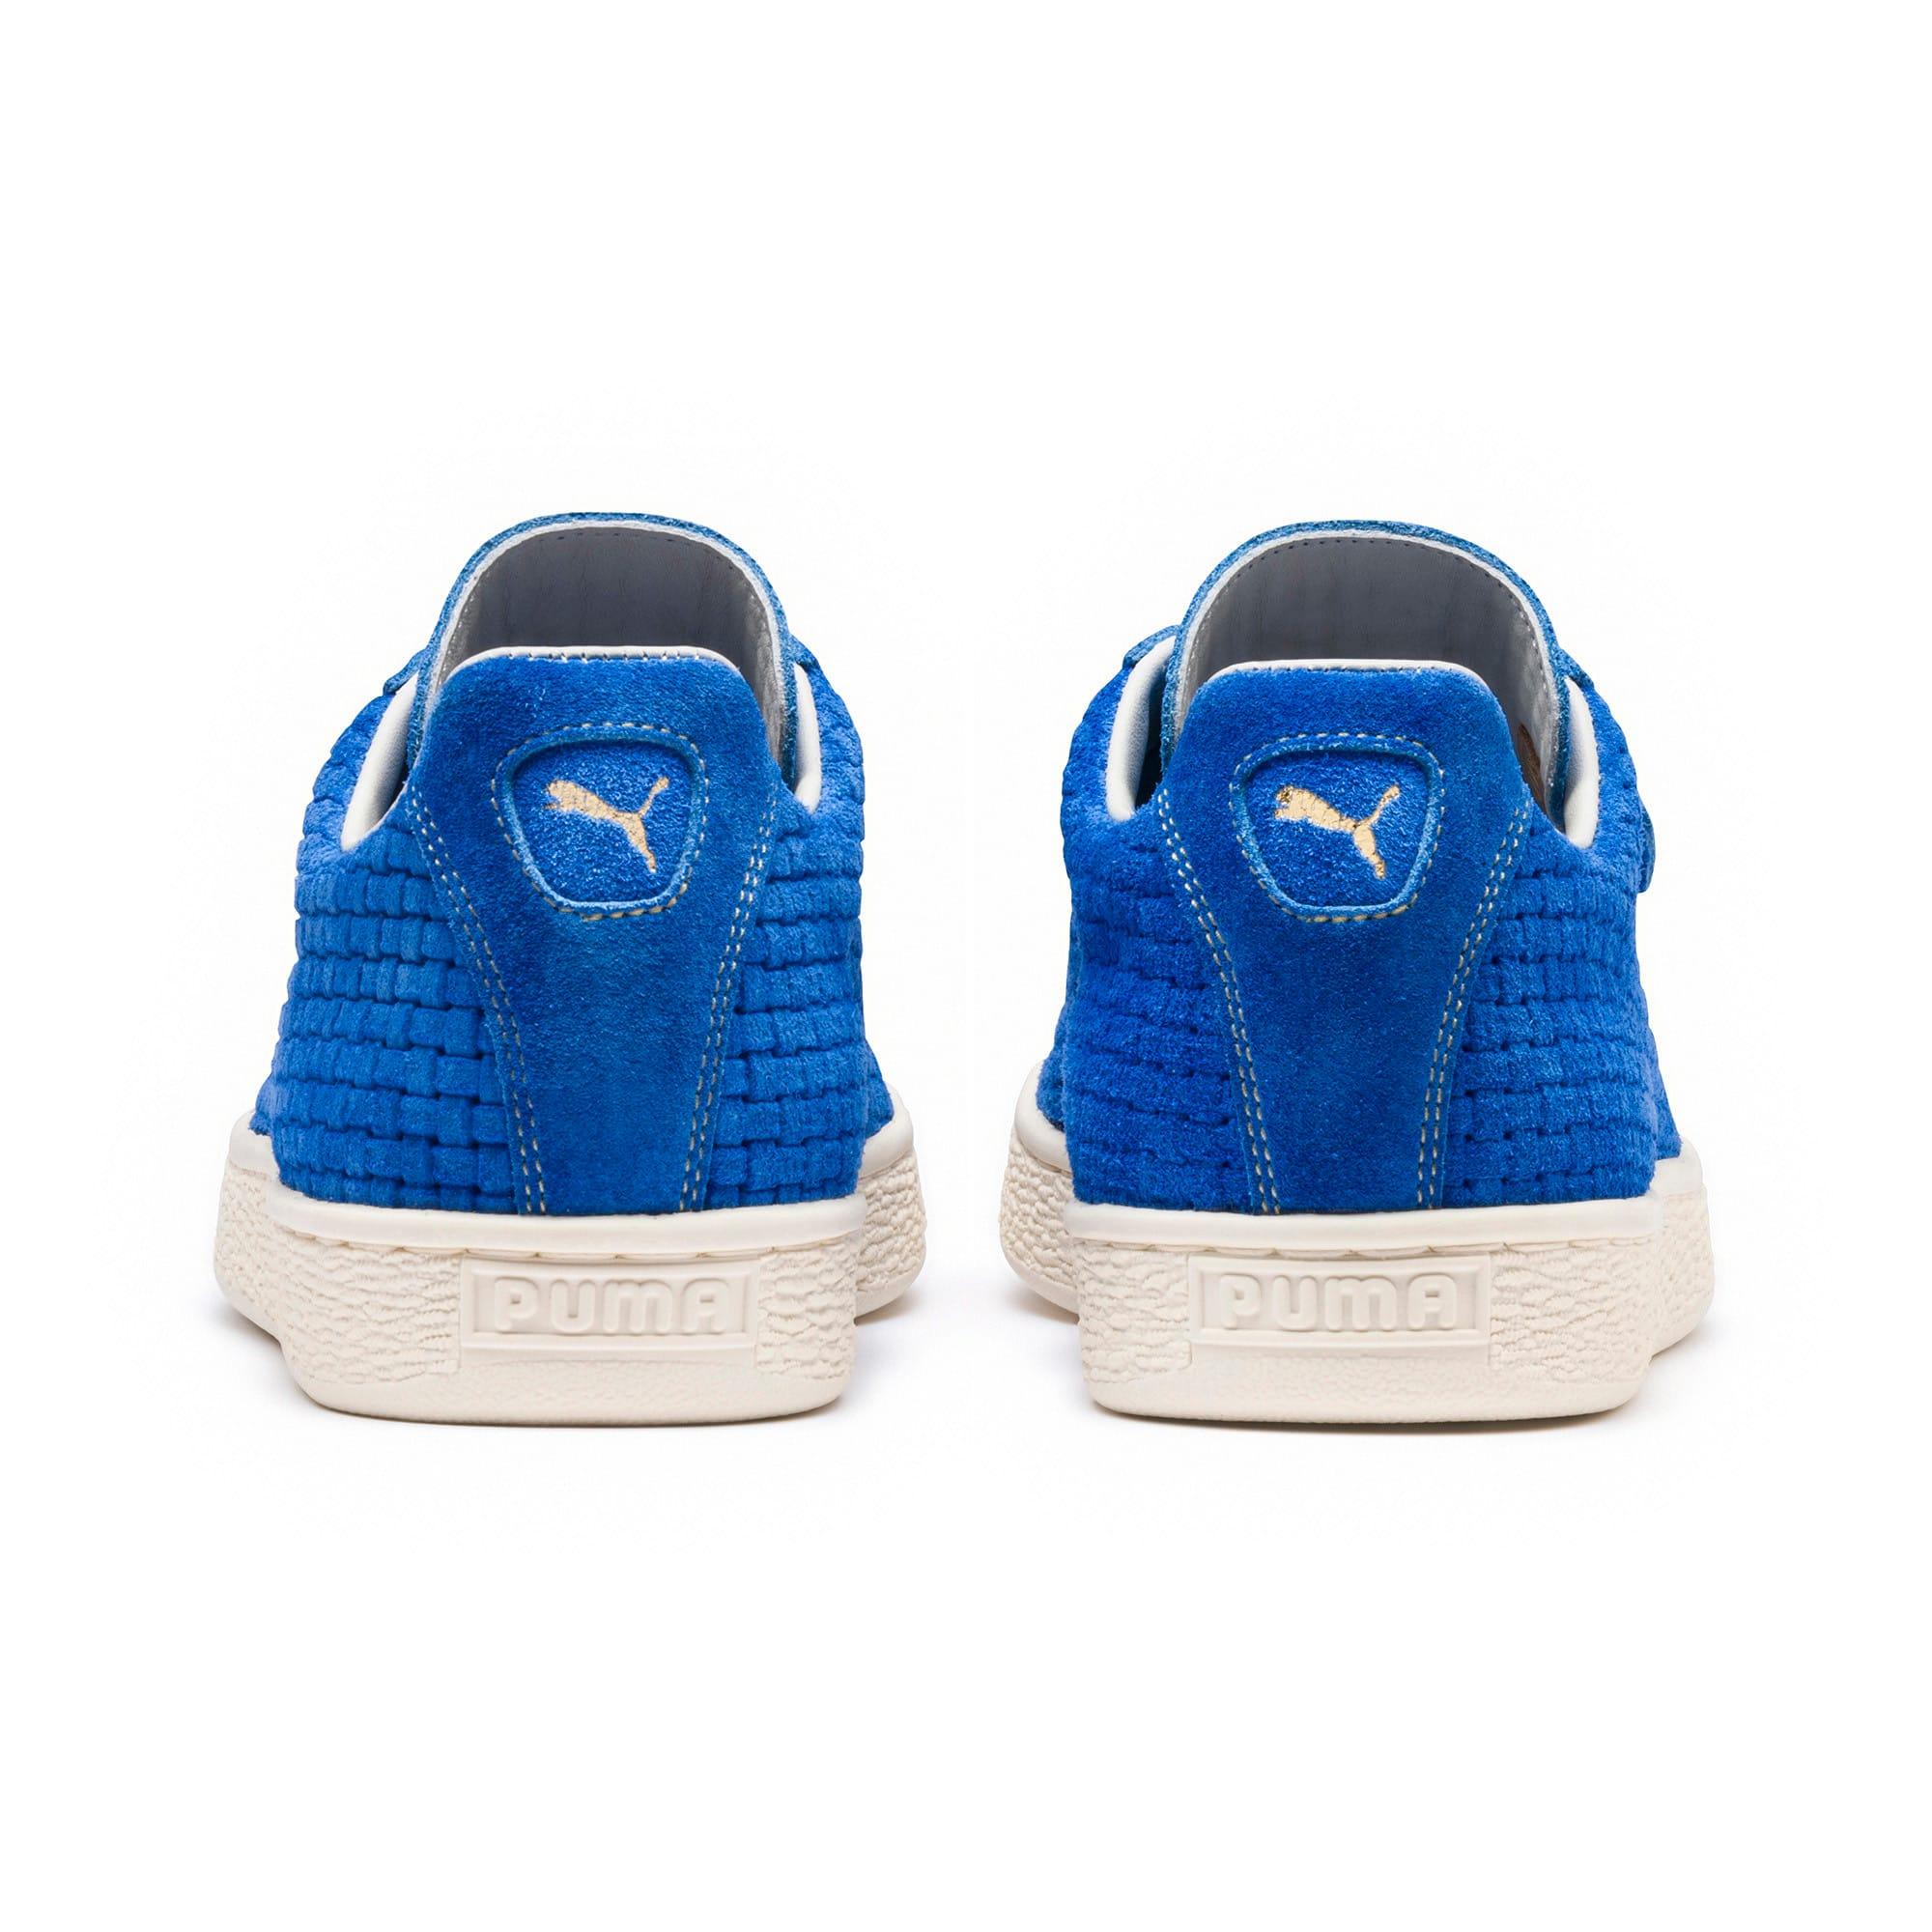 Suede Classic MIJ, Puma Royal, large